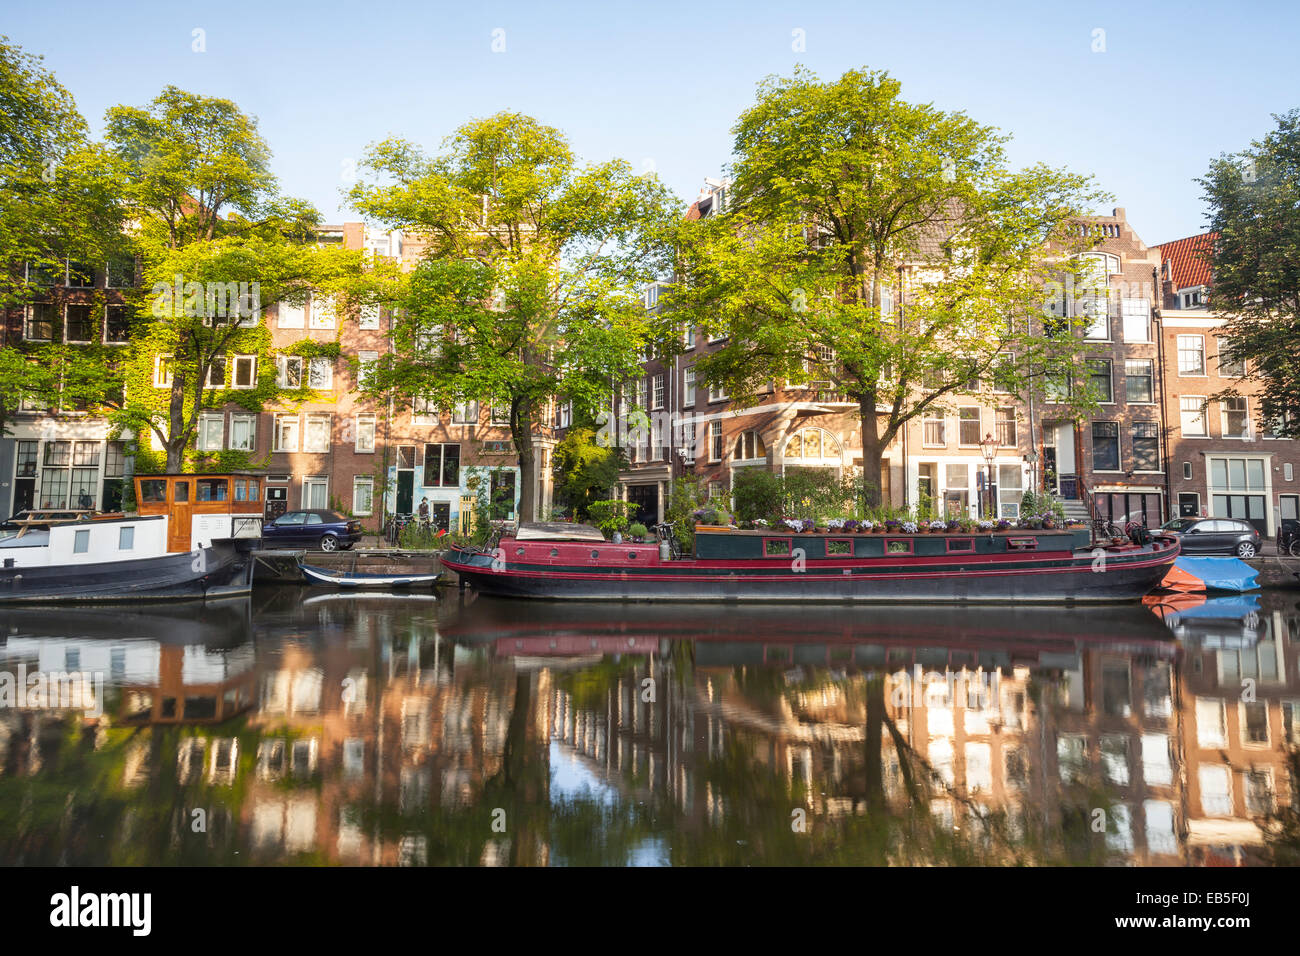 The Prinsengracht canal in Amsterdam. The area is designated as a World Heritage Site by UNESCO. - Stock Image